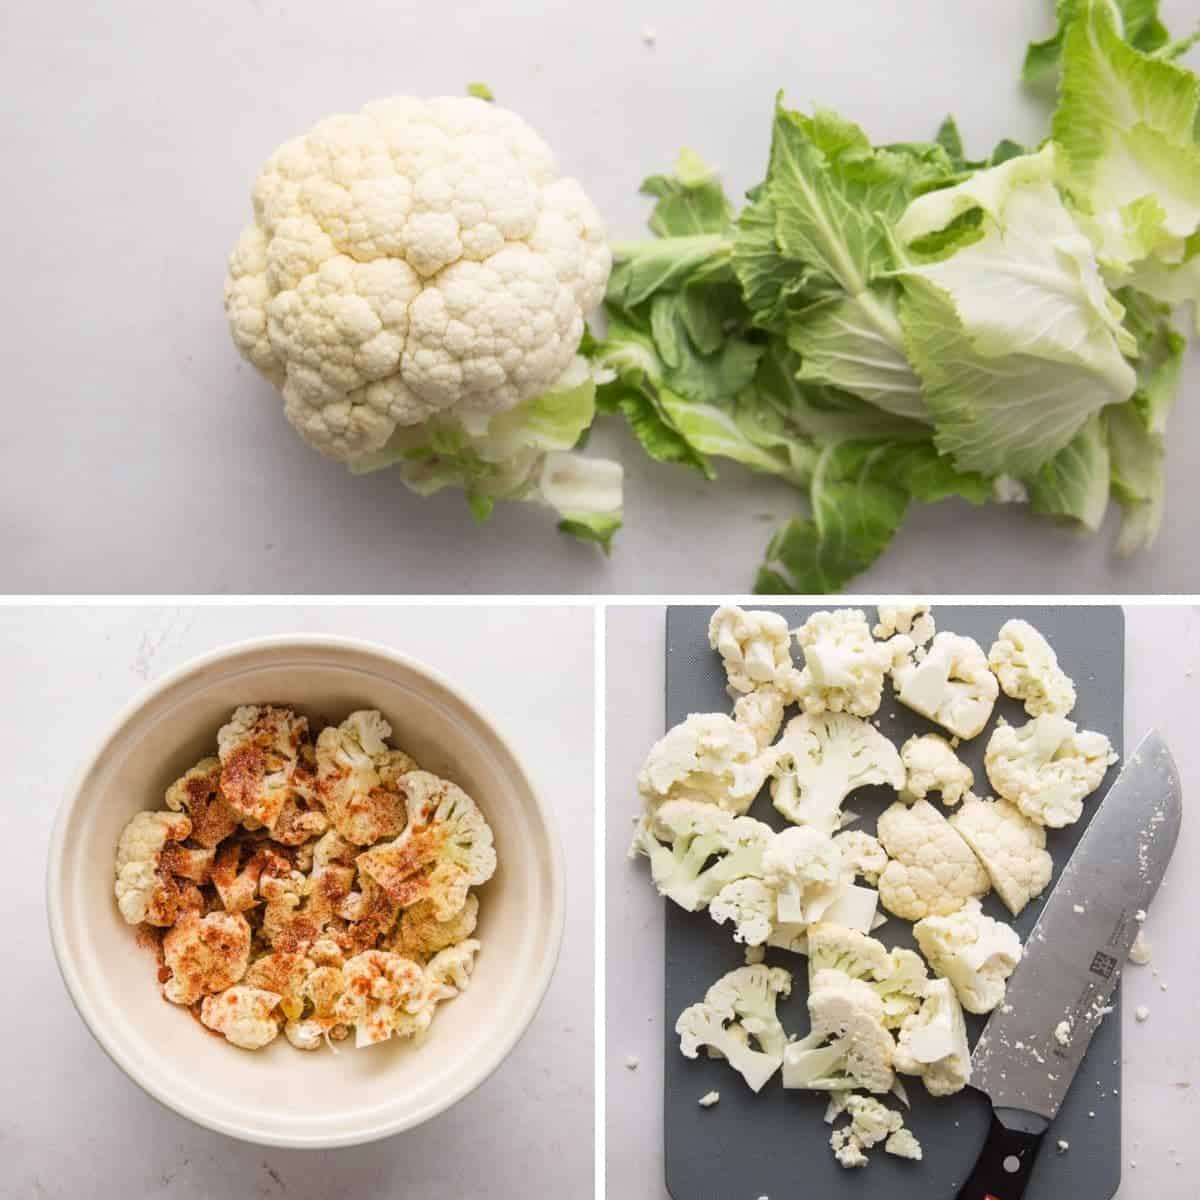 How to cut cauliflower in 3 pictures.